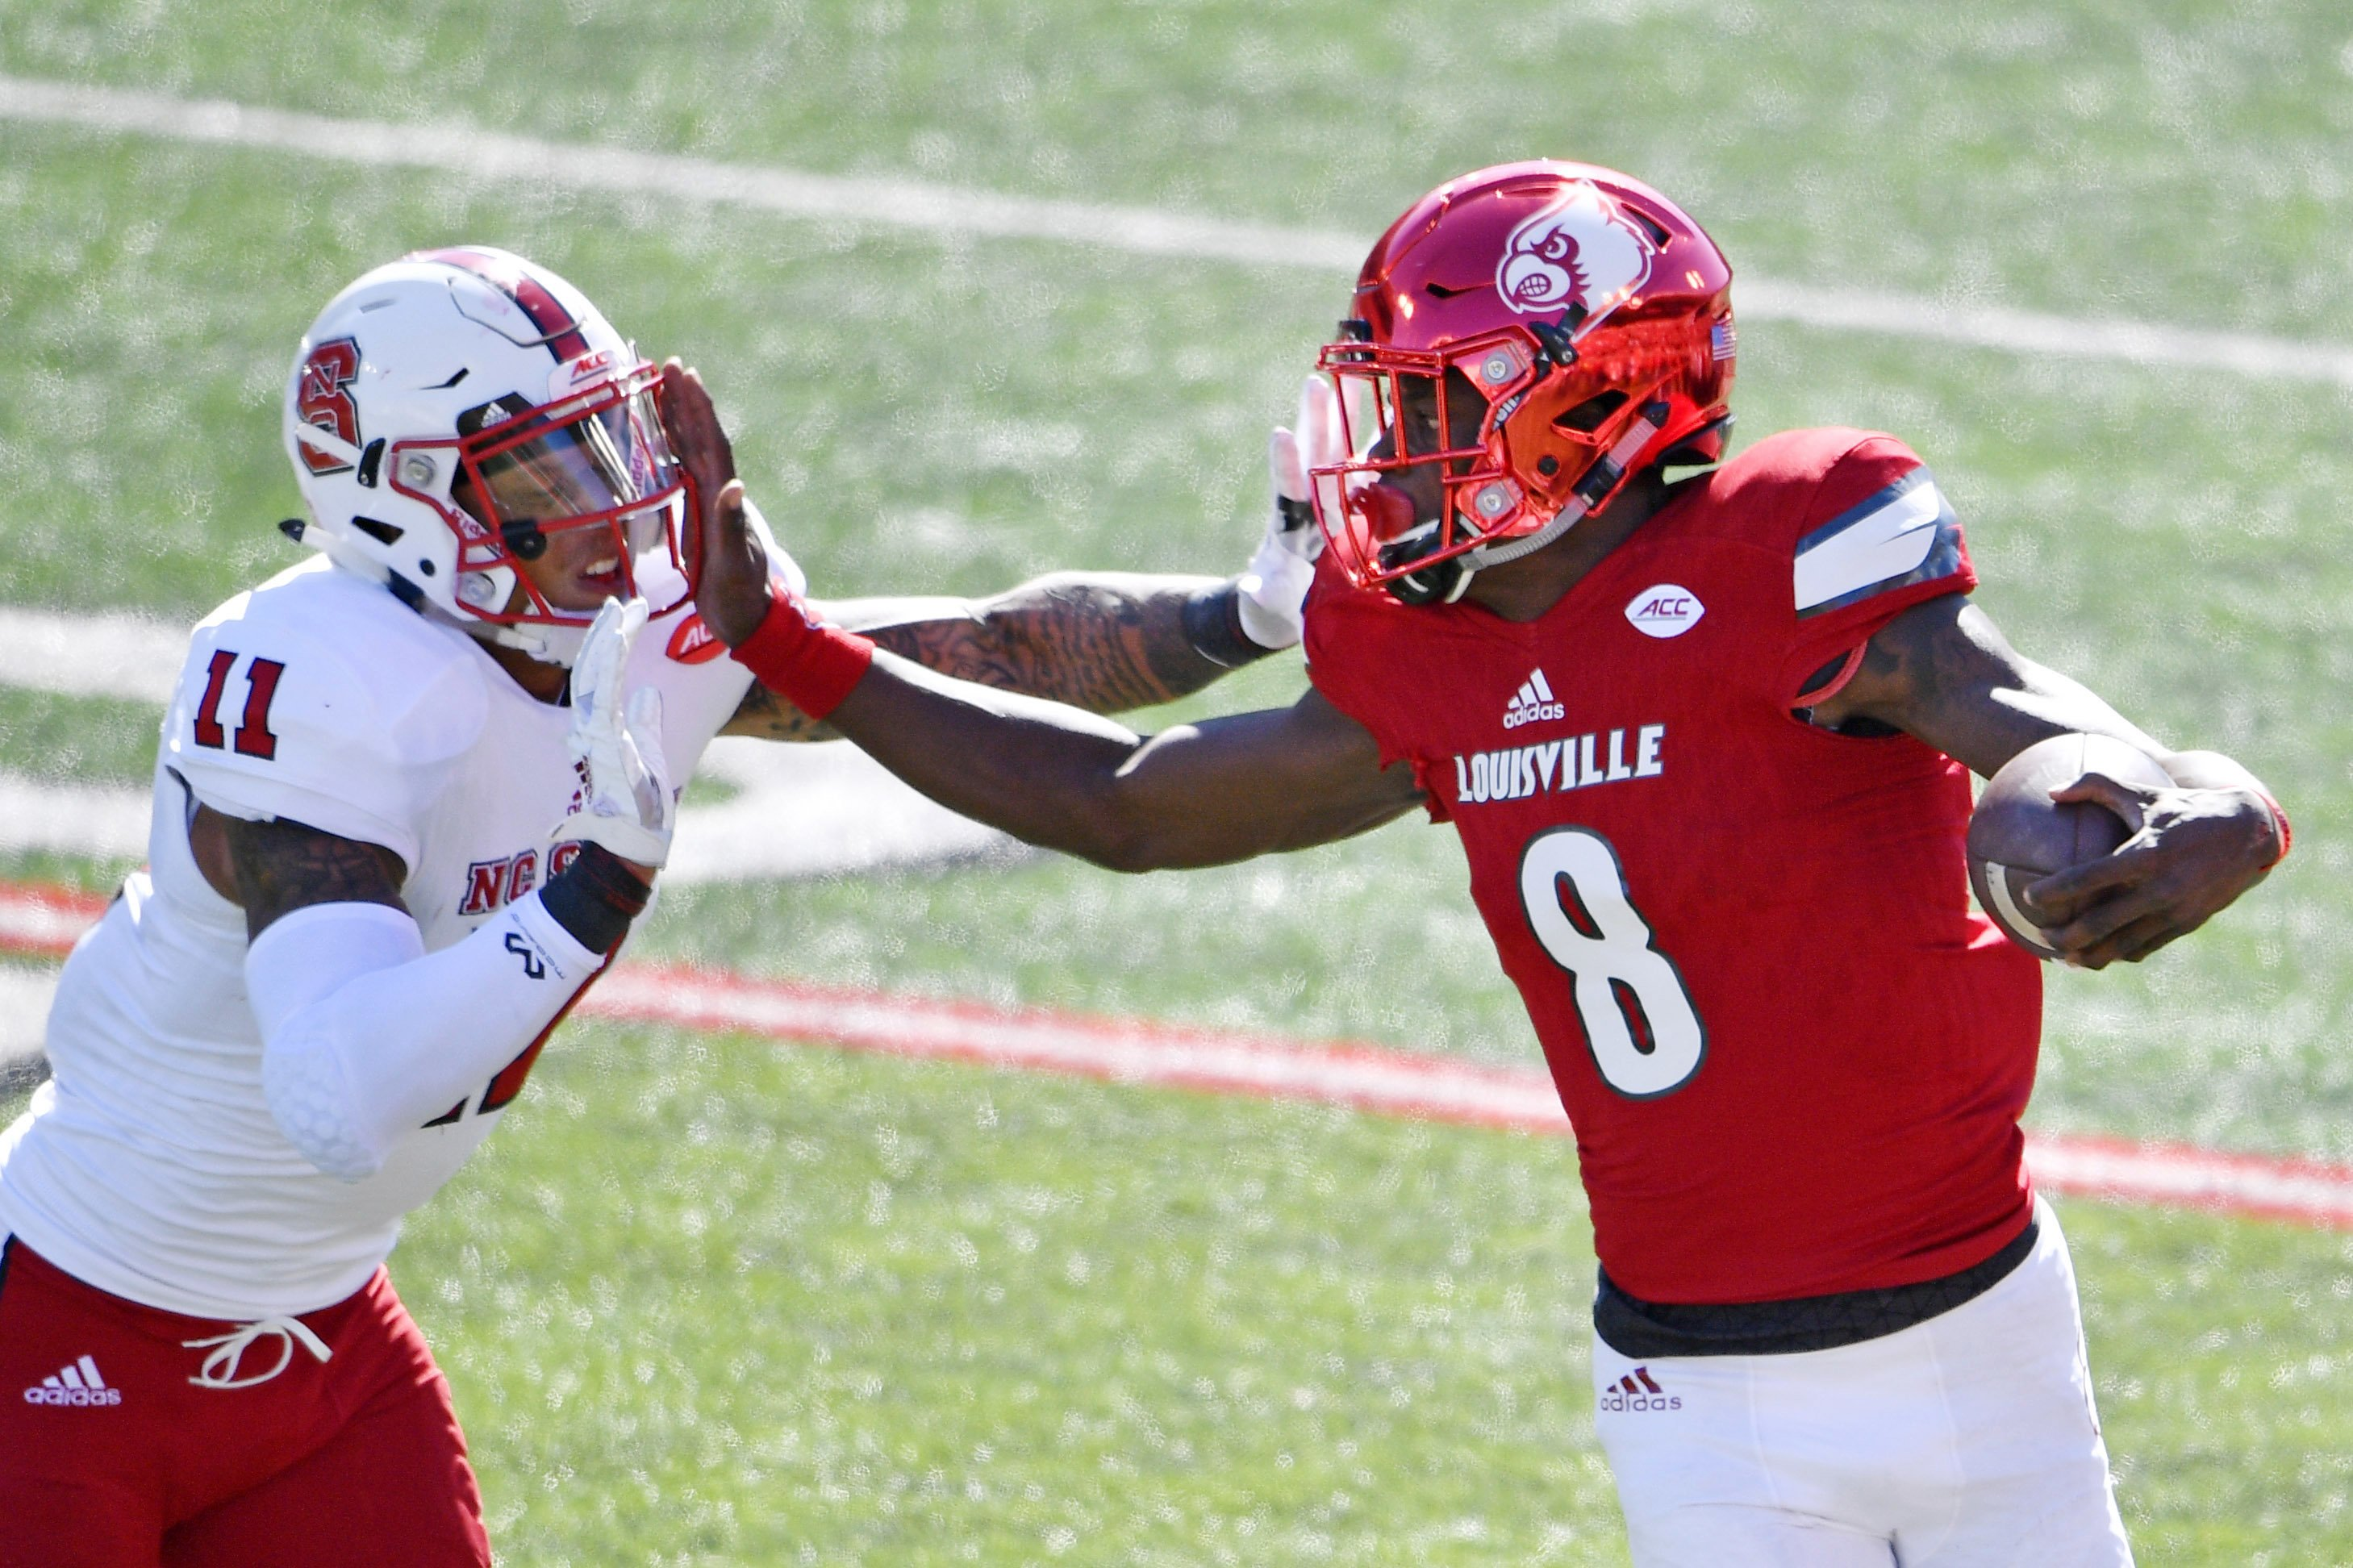 Lamar Jackson Shreds UNC Defense, Has Over 1000 Yards Already this Season